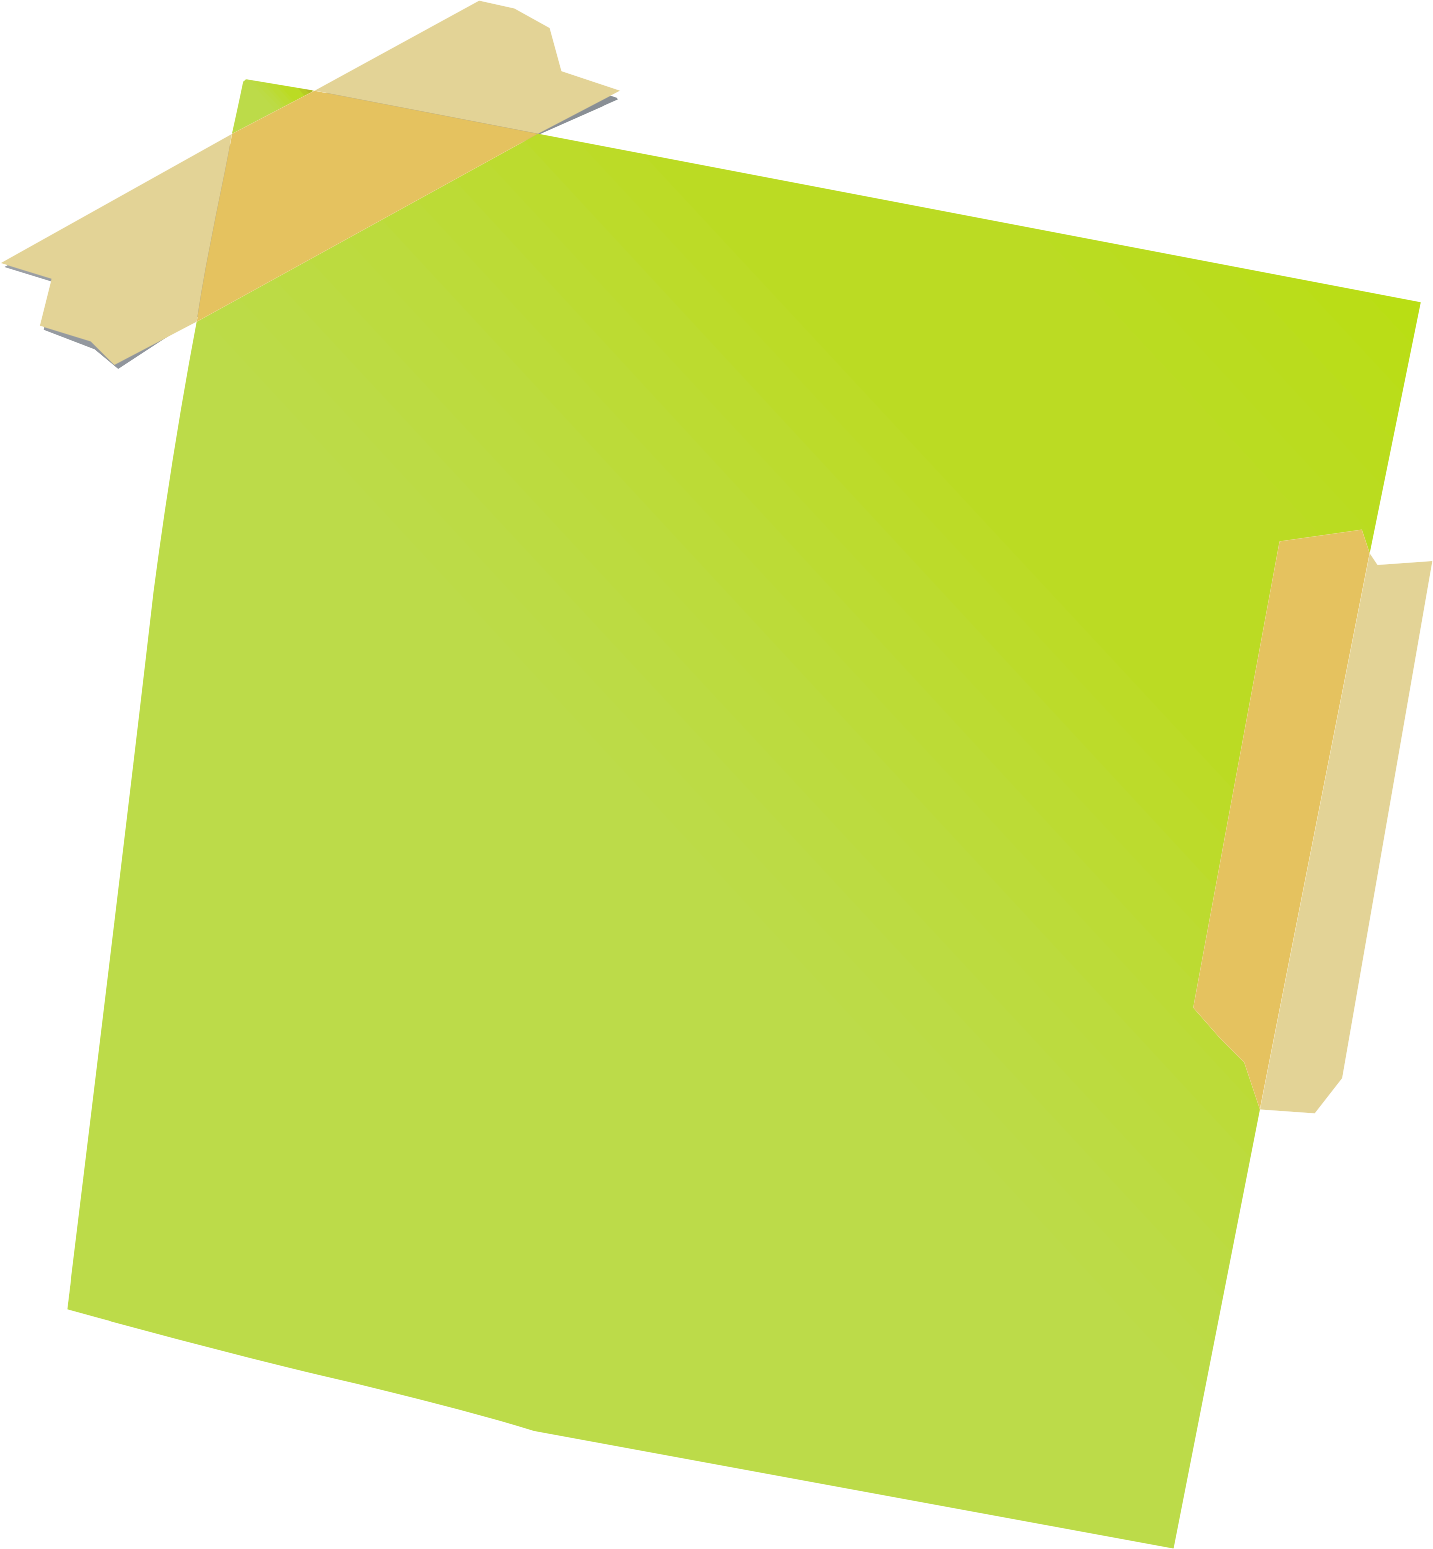 green sticky notes png image - purepng | free transparent cc0 png